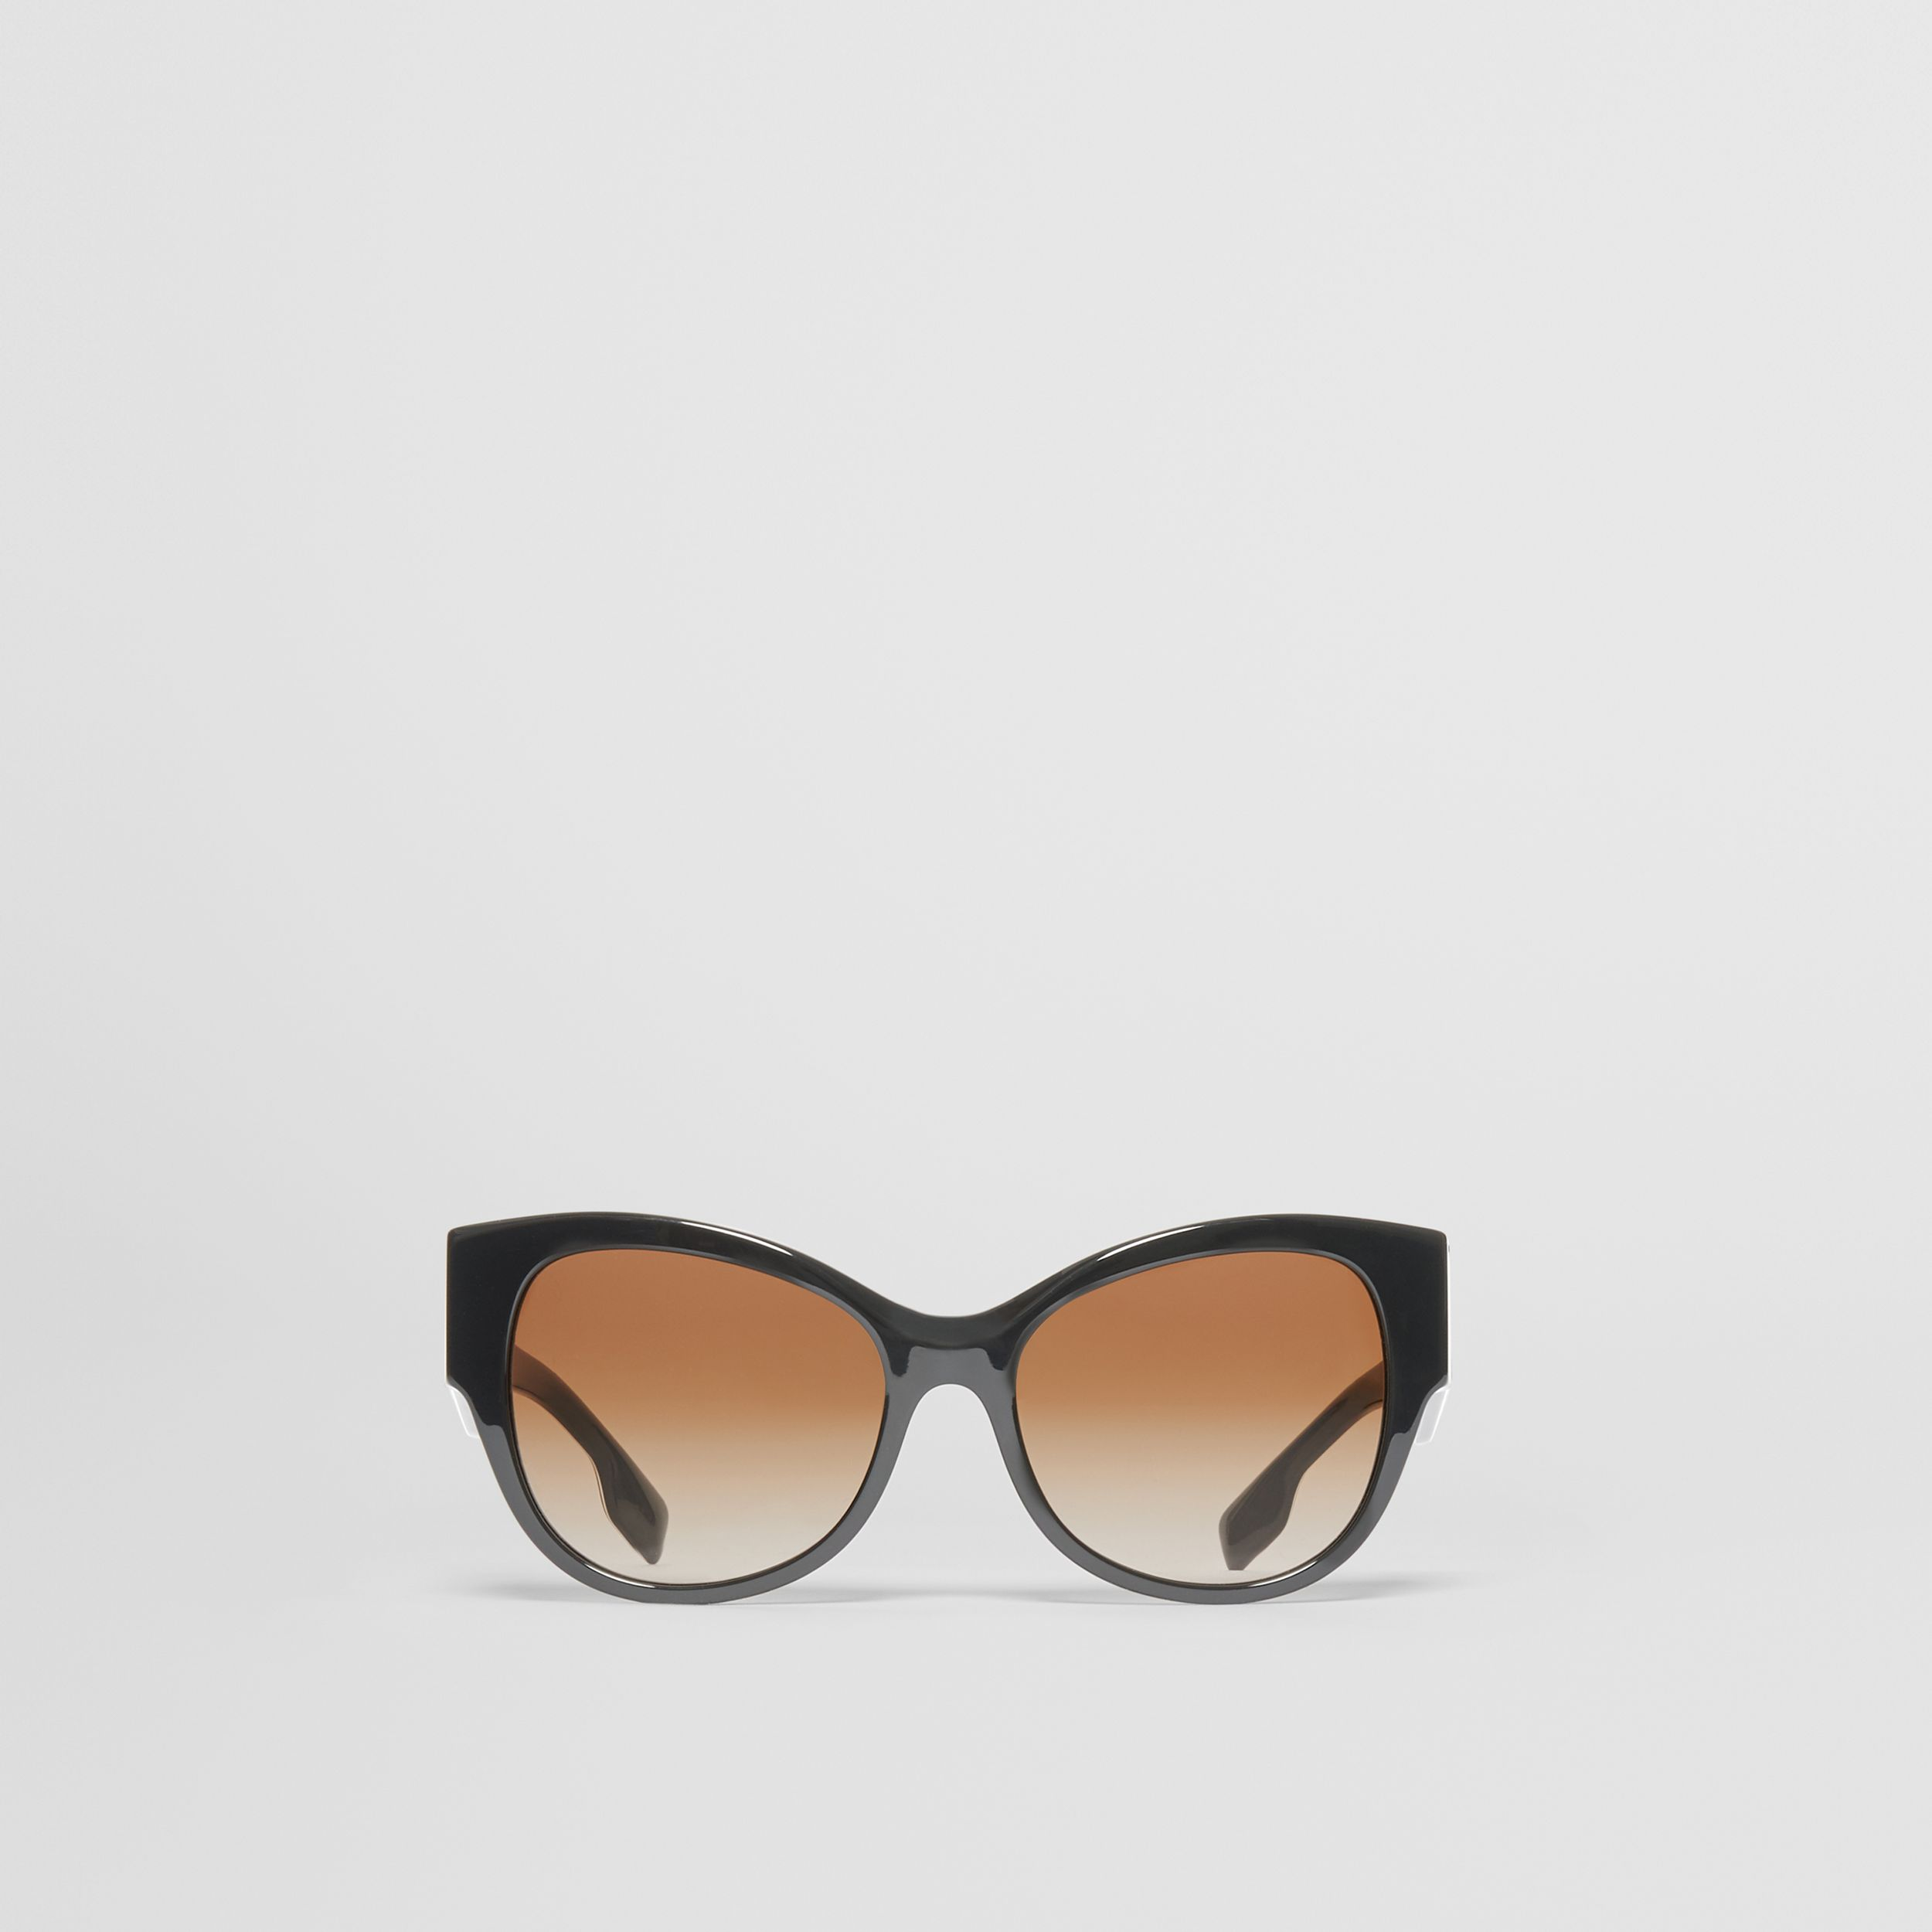 Monogram Detail Butterfly Frame Sunglasses in Black/vermillion - Women | Burberry Canada - 1